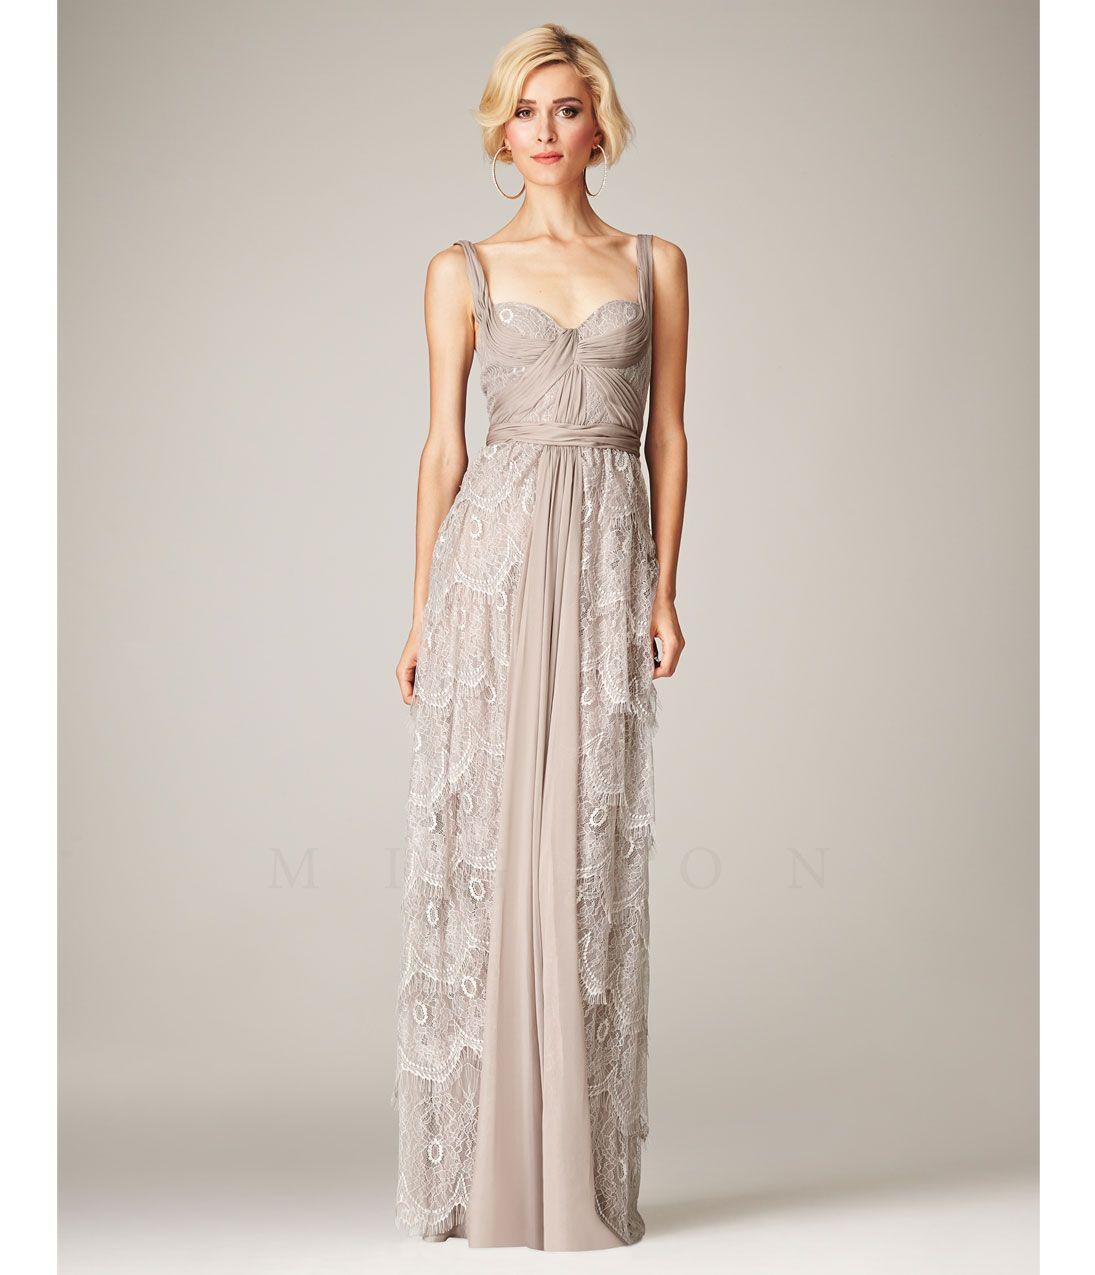 100   Great Gatsby Prom Dresses for Sale | A 4, Spring and Retro ...